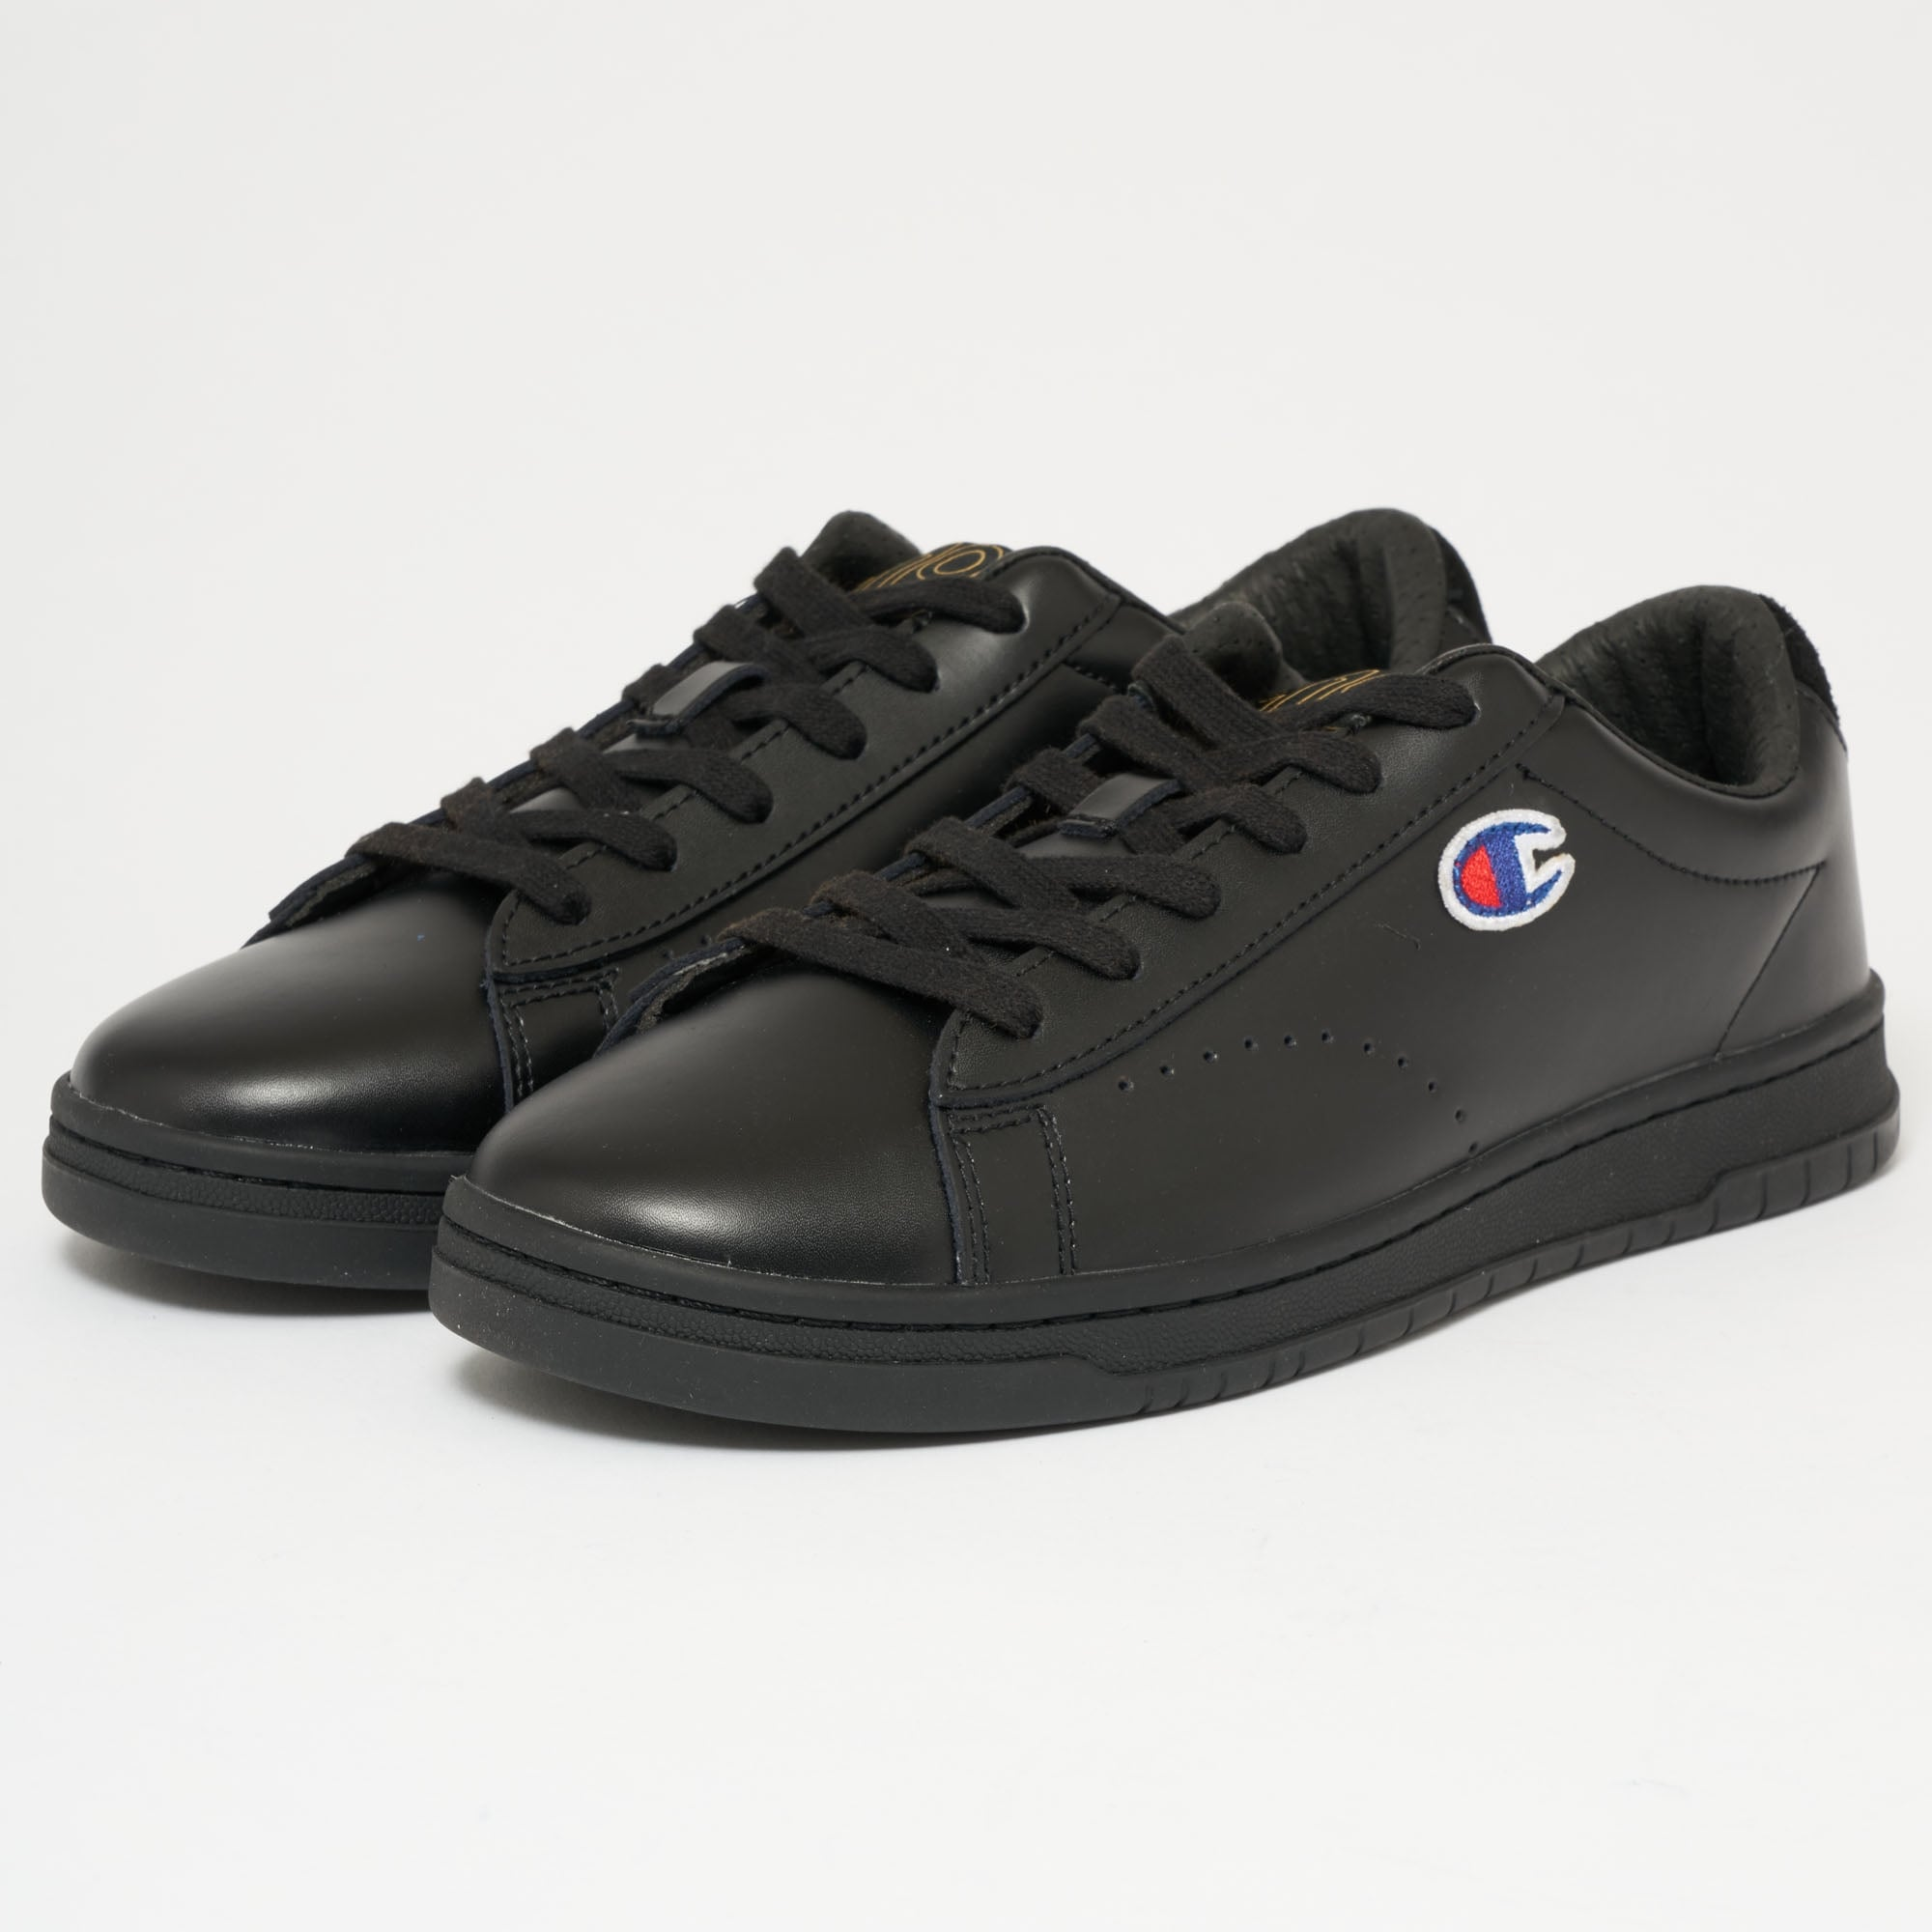 Champion 919 Low Top 'C' Patch Trainers